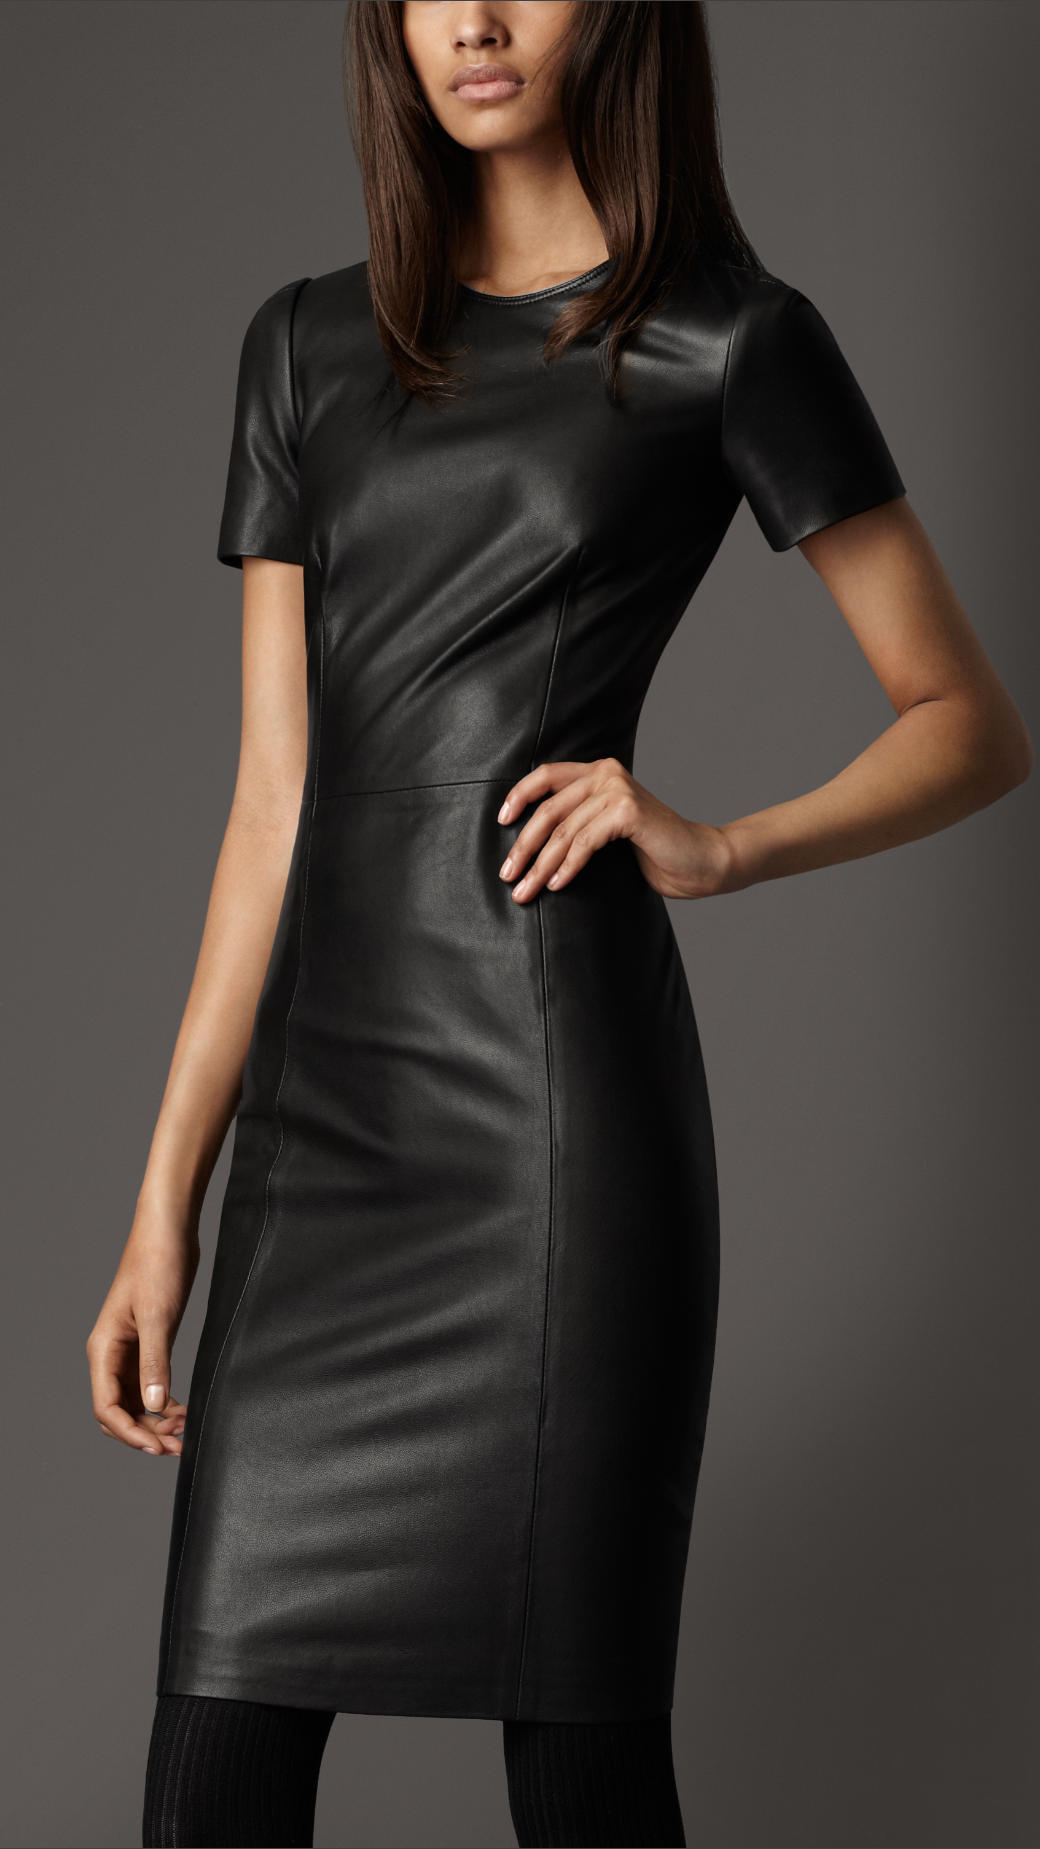 Buy the latest black leather dress cheap shop fashion style with free shipping, and check out our daily updated new arrival black leather dress at specialtysports.ga